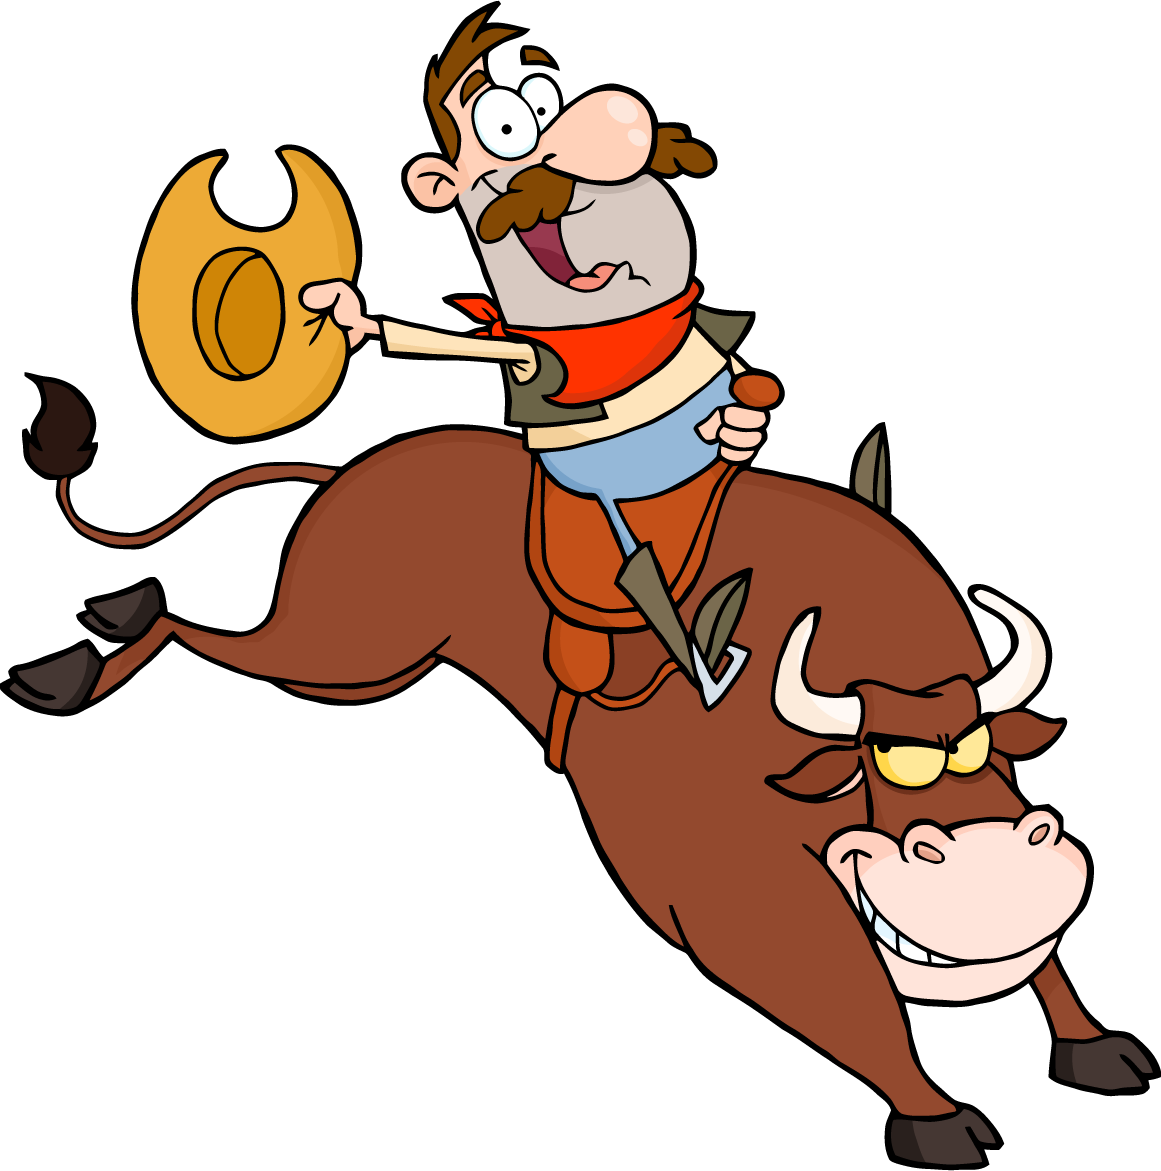 Rodeo Clip Art Borders | Clipart library - Free Clipart Images - Rodeo PNG  HD Free - Bull Riding PNG HD